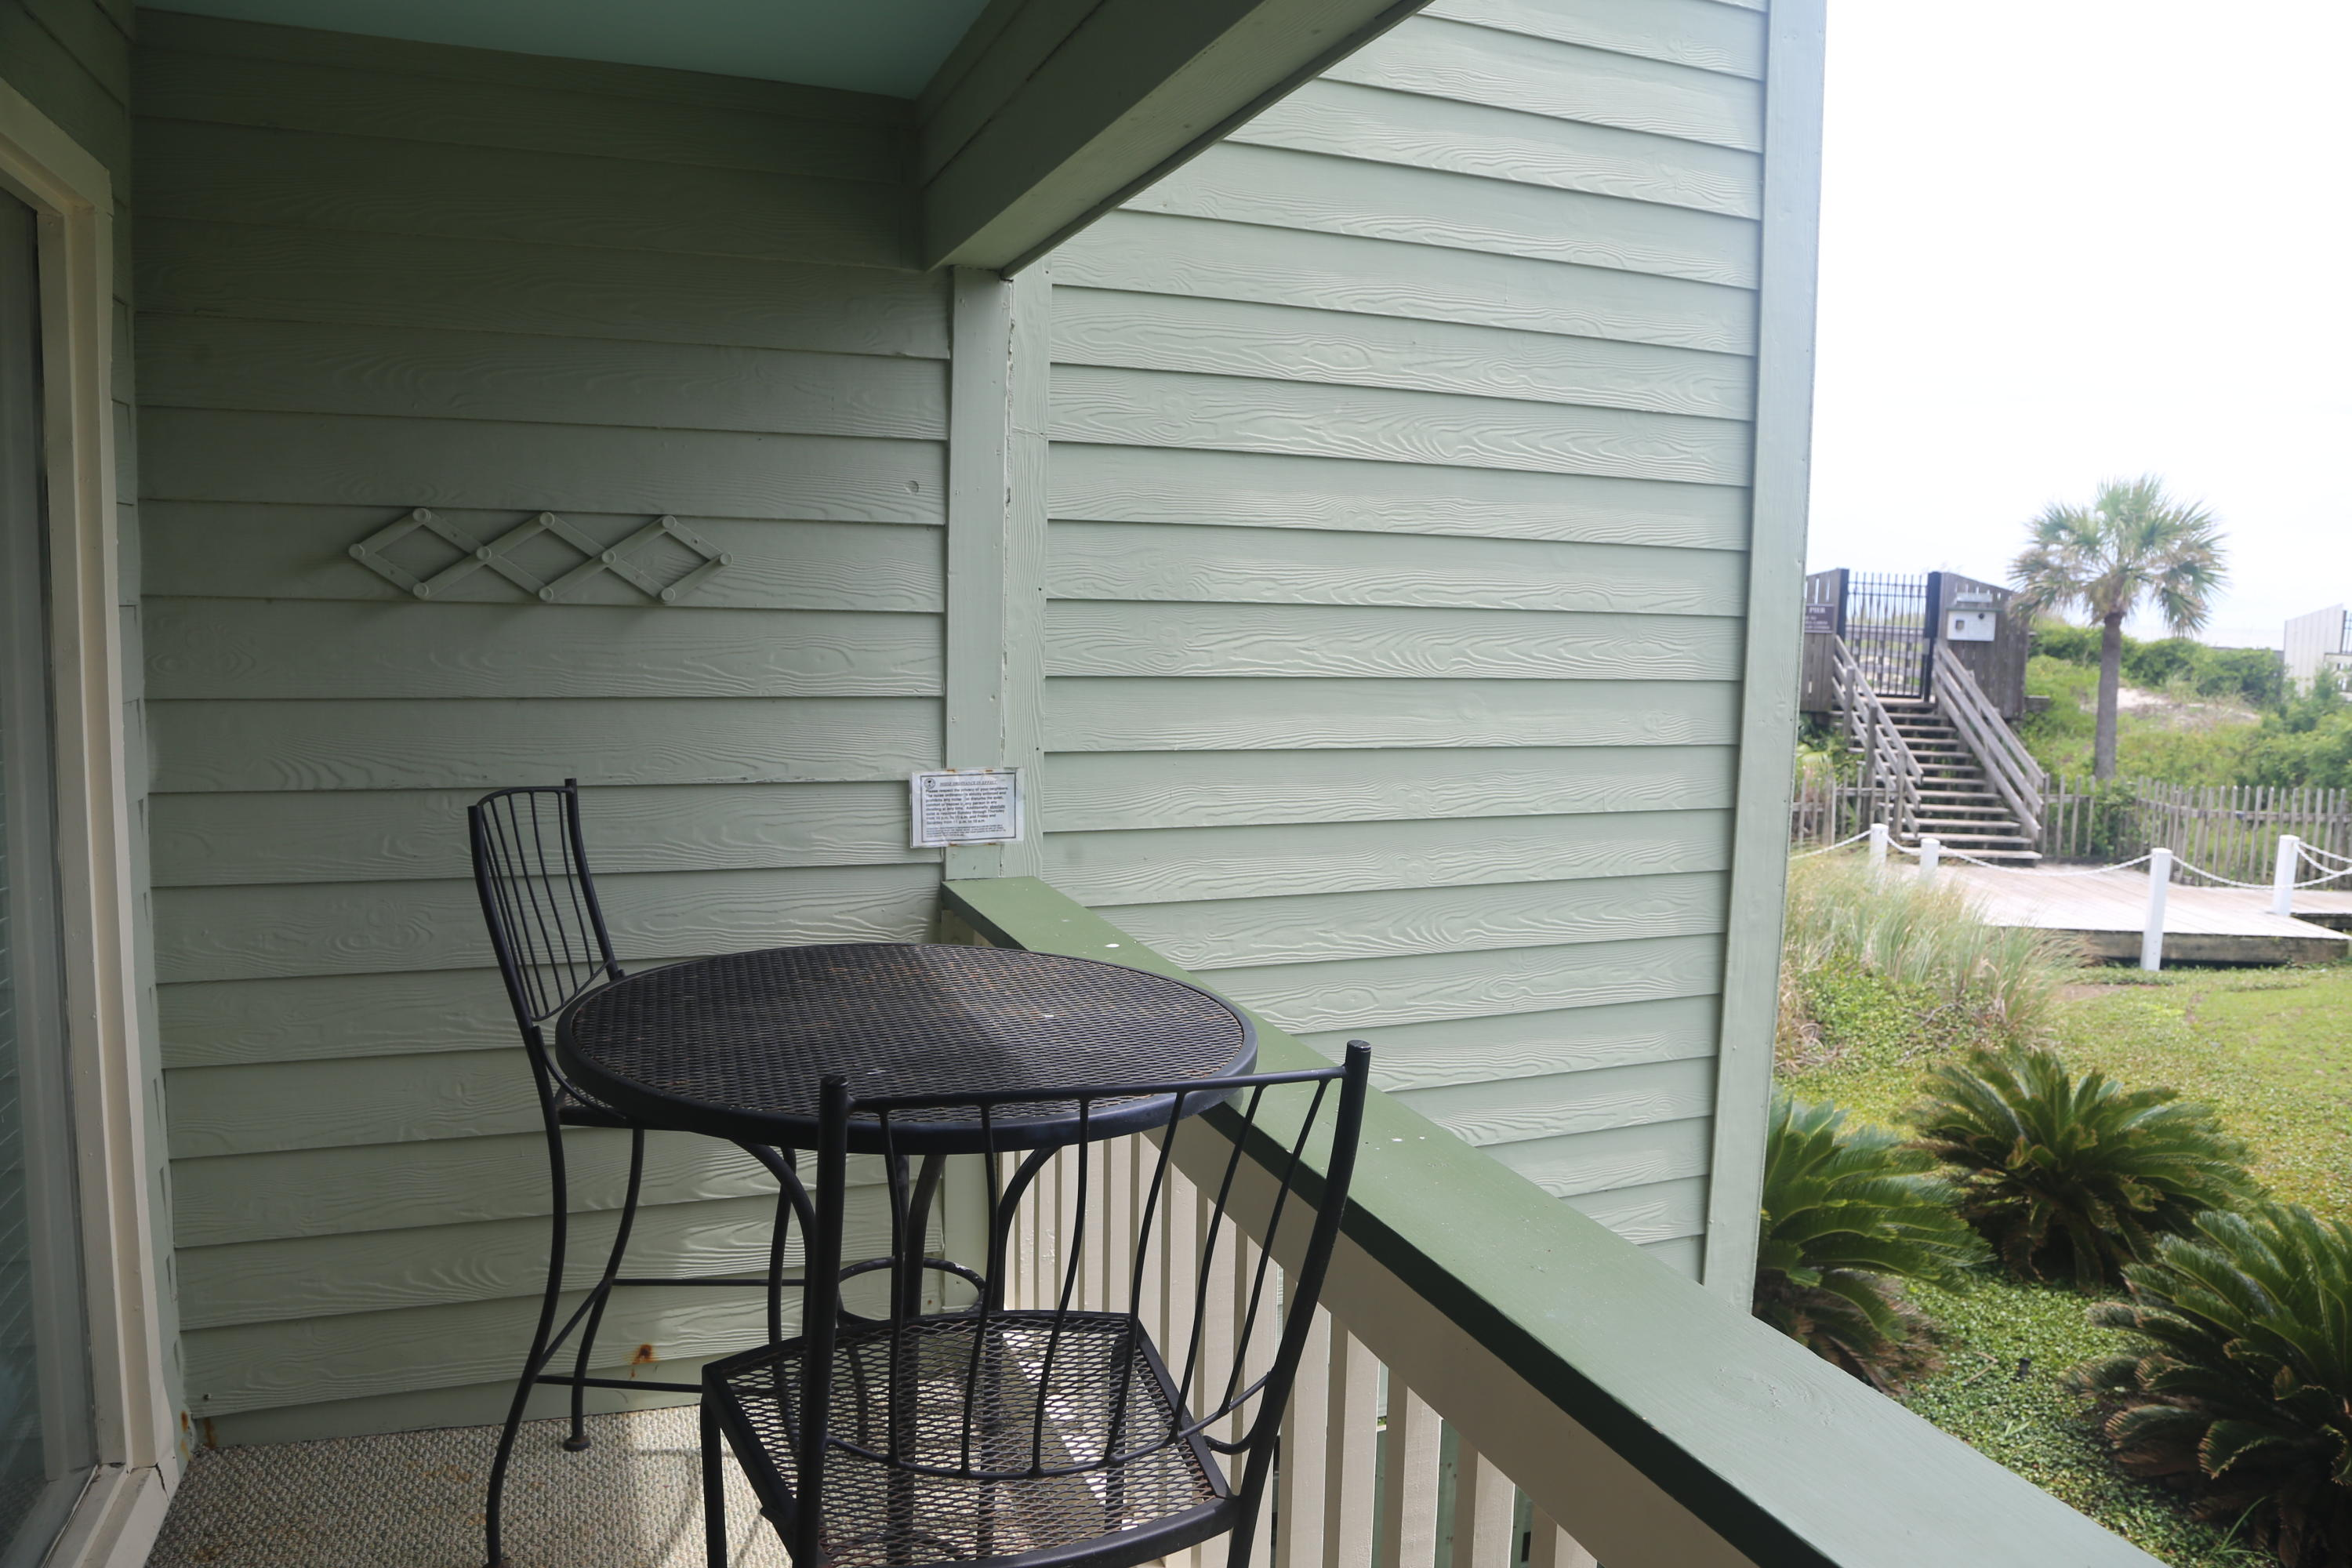 Sea Cabin On The Ocean Homes For Sale - 1300 Ocean, Isle of Palms, SC - 31